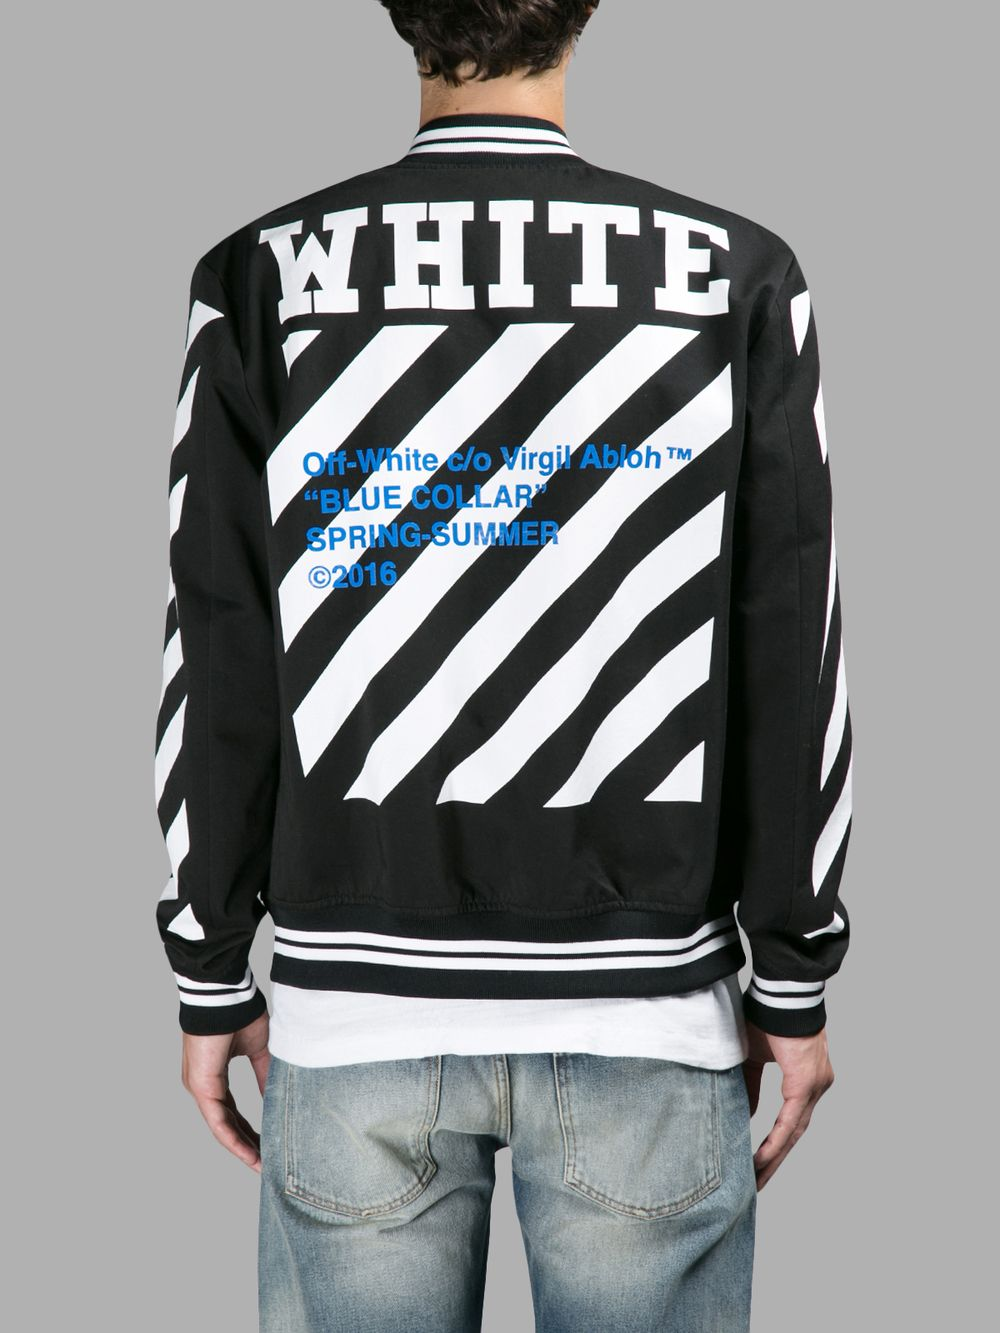 ブルゾン OFF WHITE C/O VIRGIL ABLOH MEN'S BLACK BLUE COLLAR